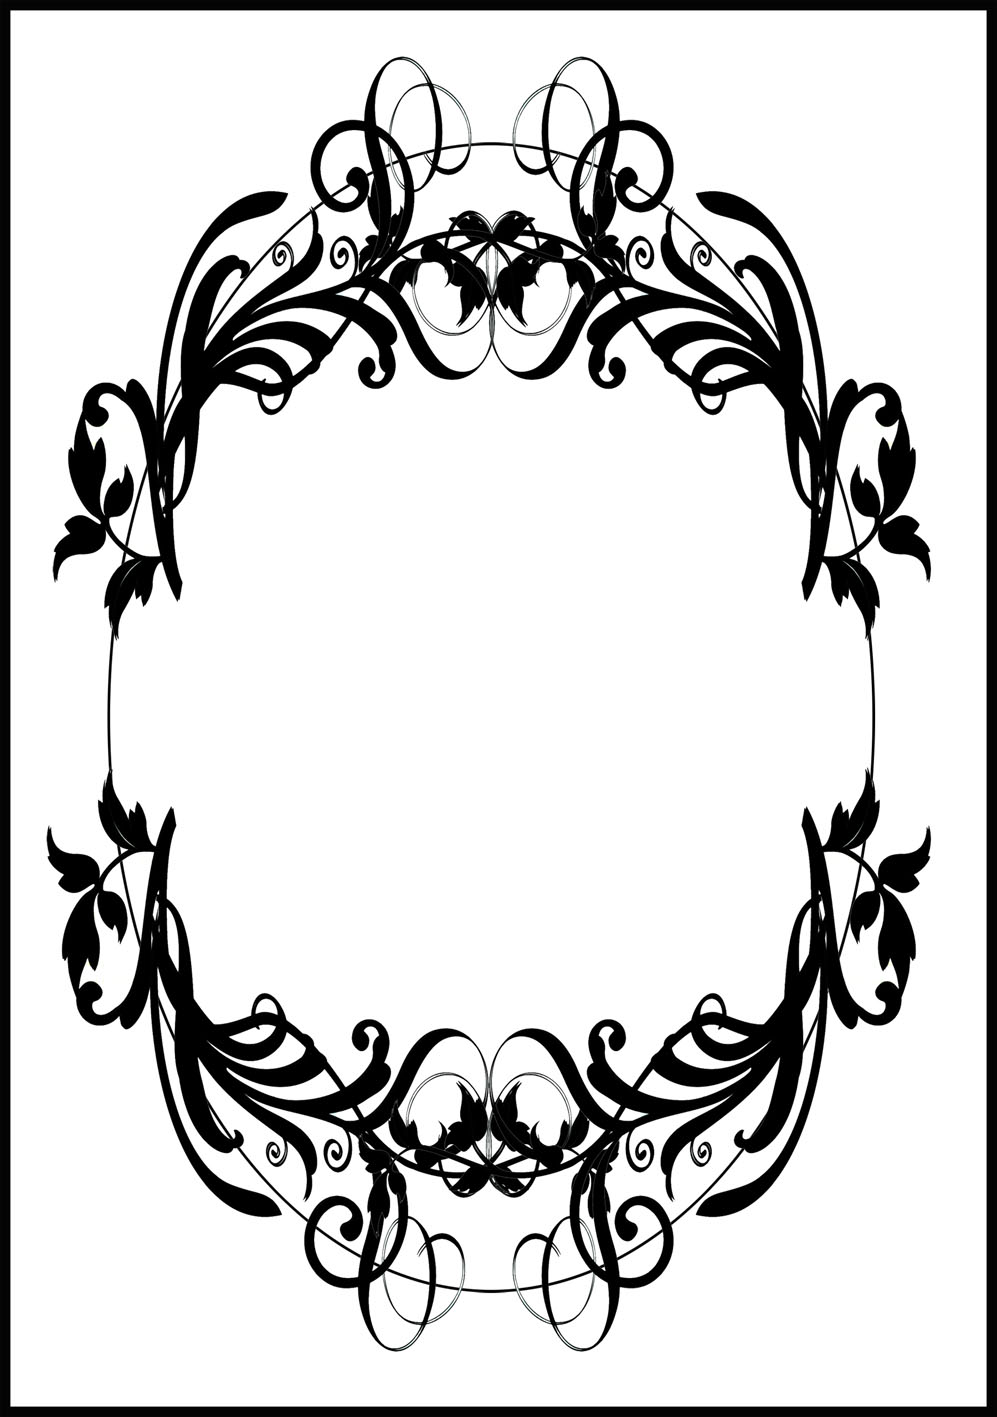 photo regarding Printable Border titled Printable Borders and Picture Frames